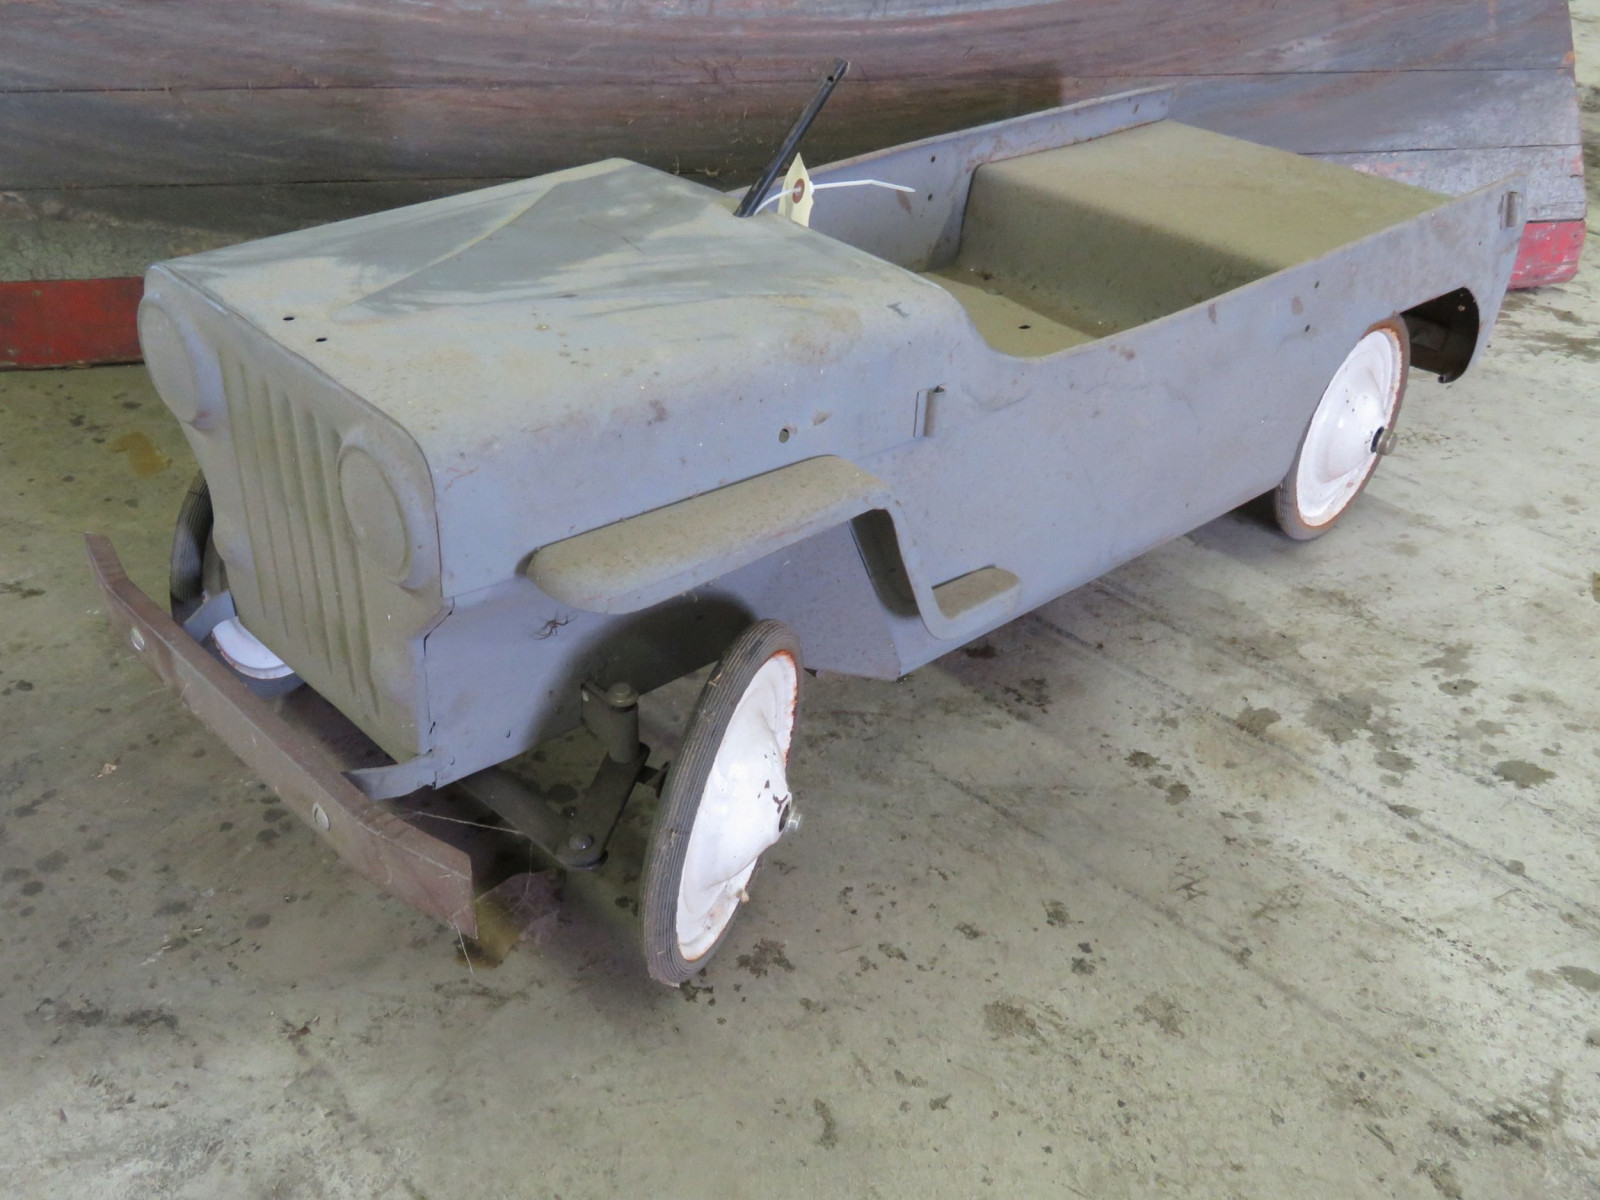 Vintage Garton Military Willys Jeep Pedal Car for restore - Image 1